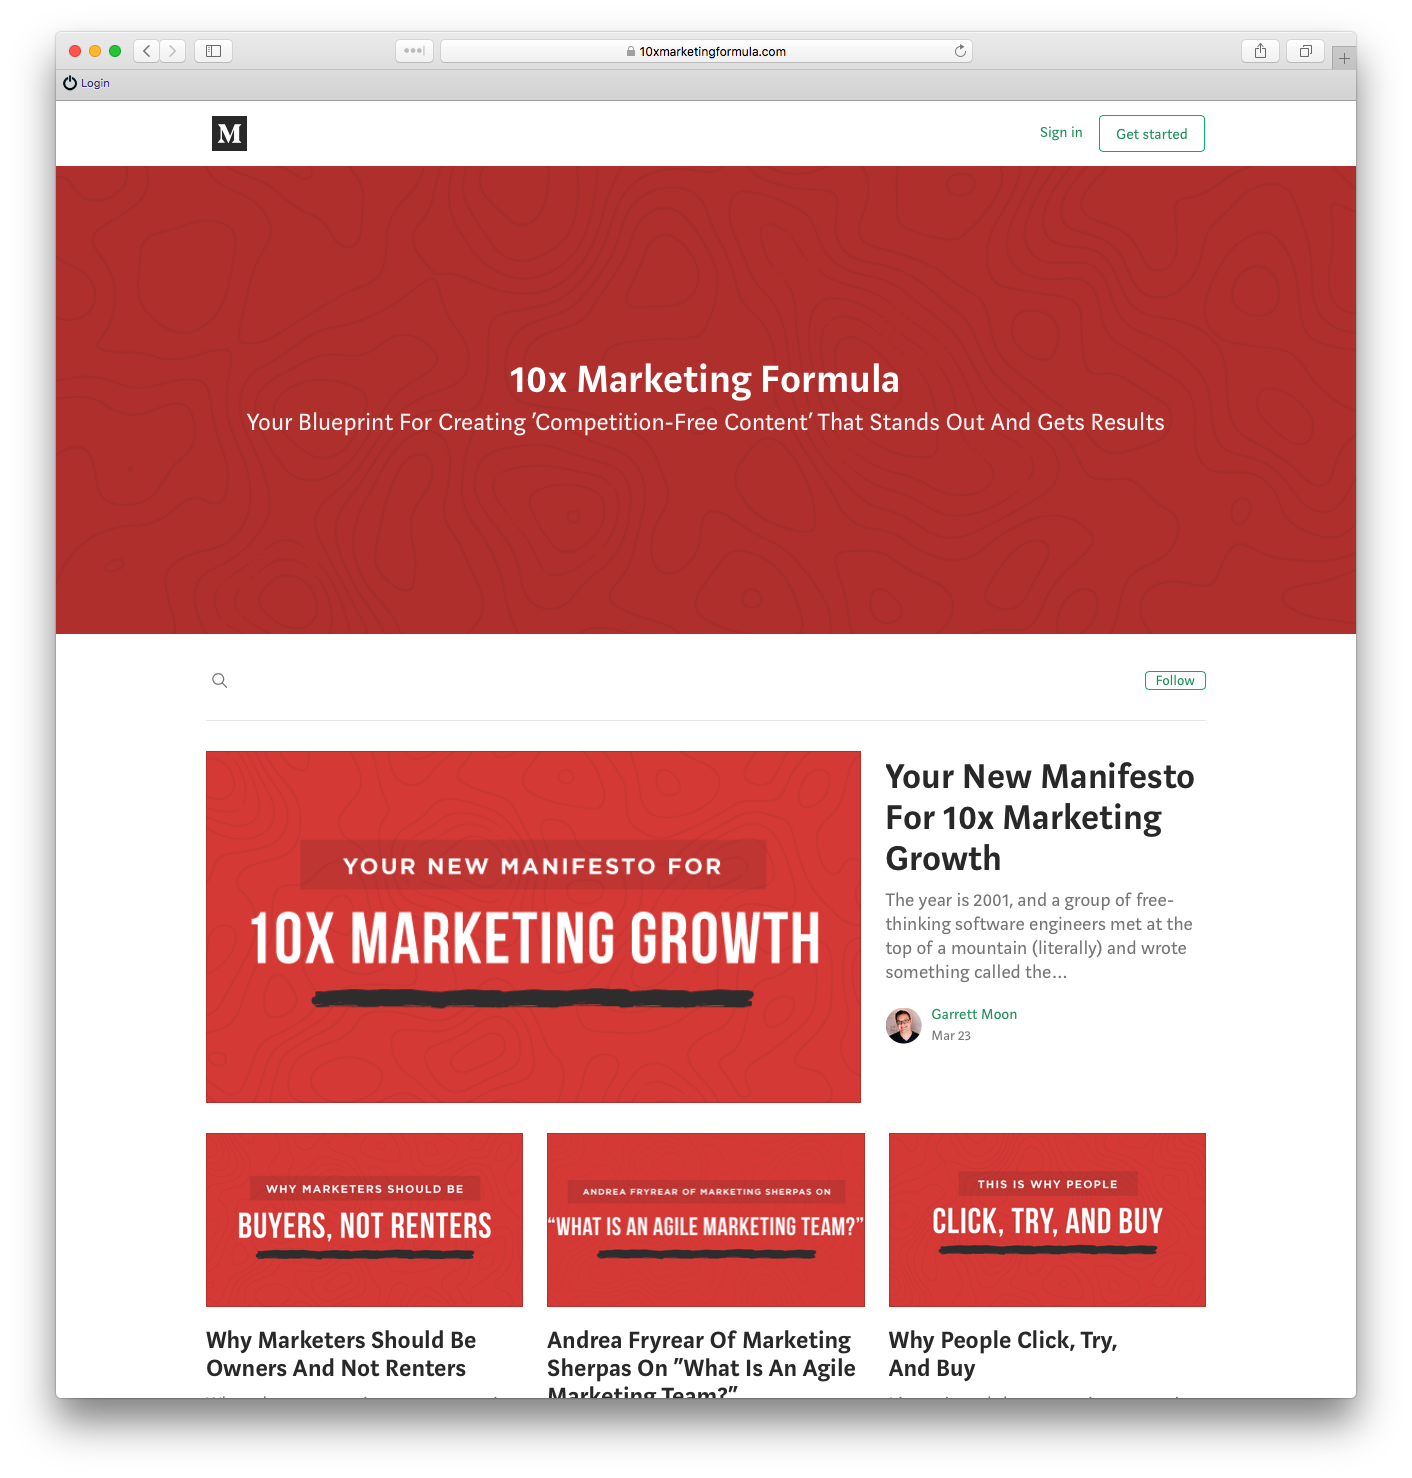 Garrett Moon and the 10x Marketing Formula